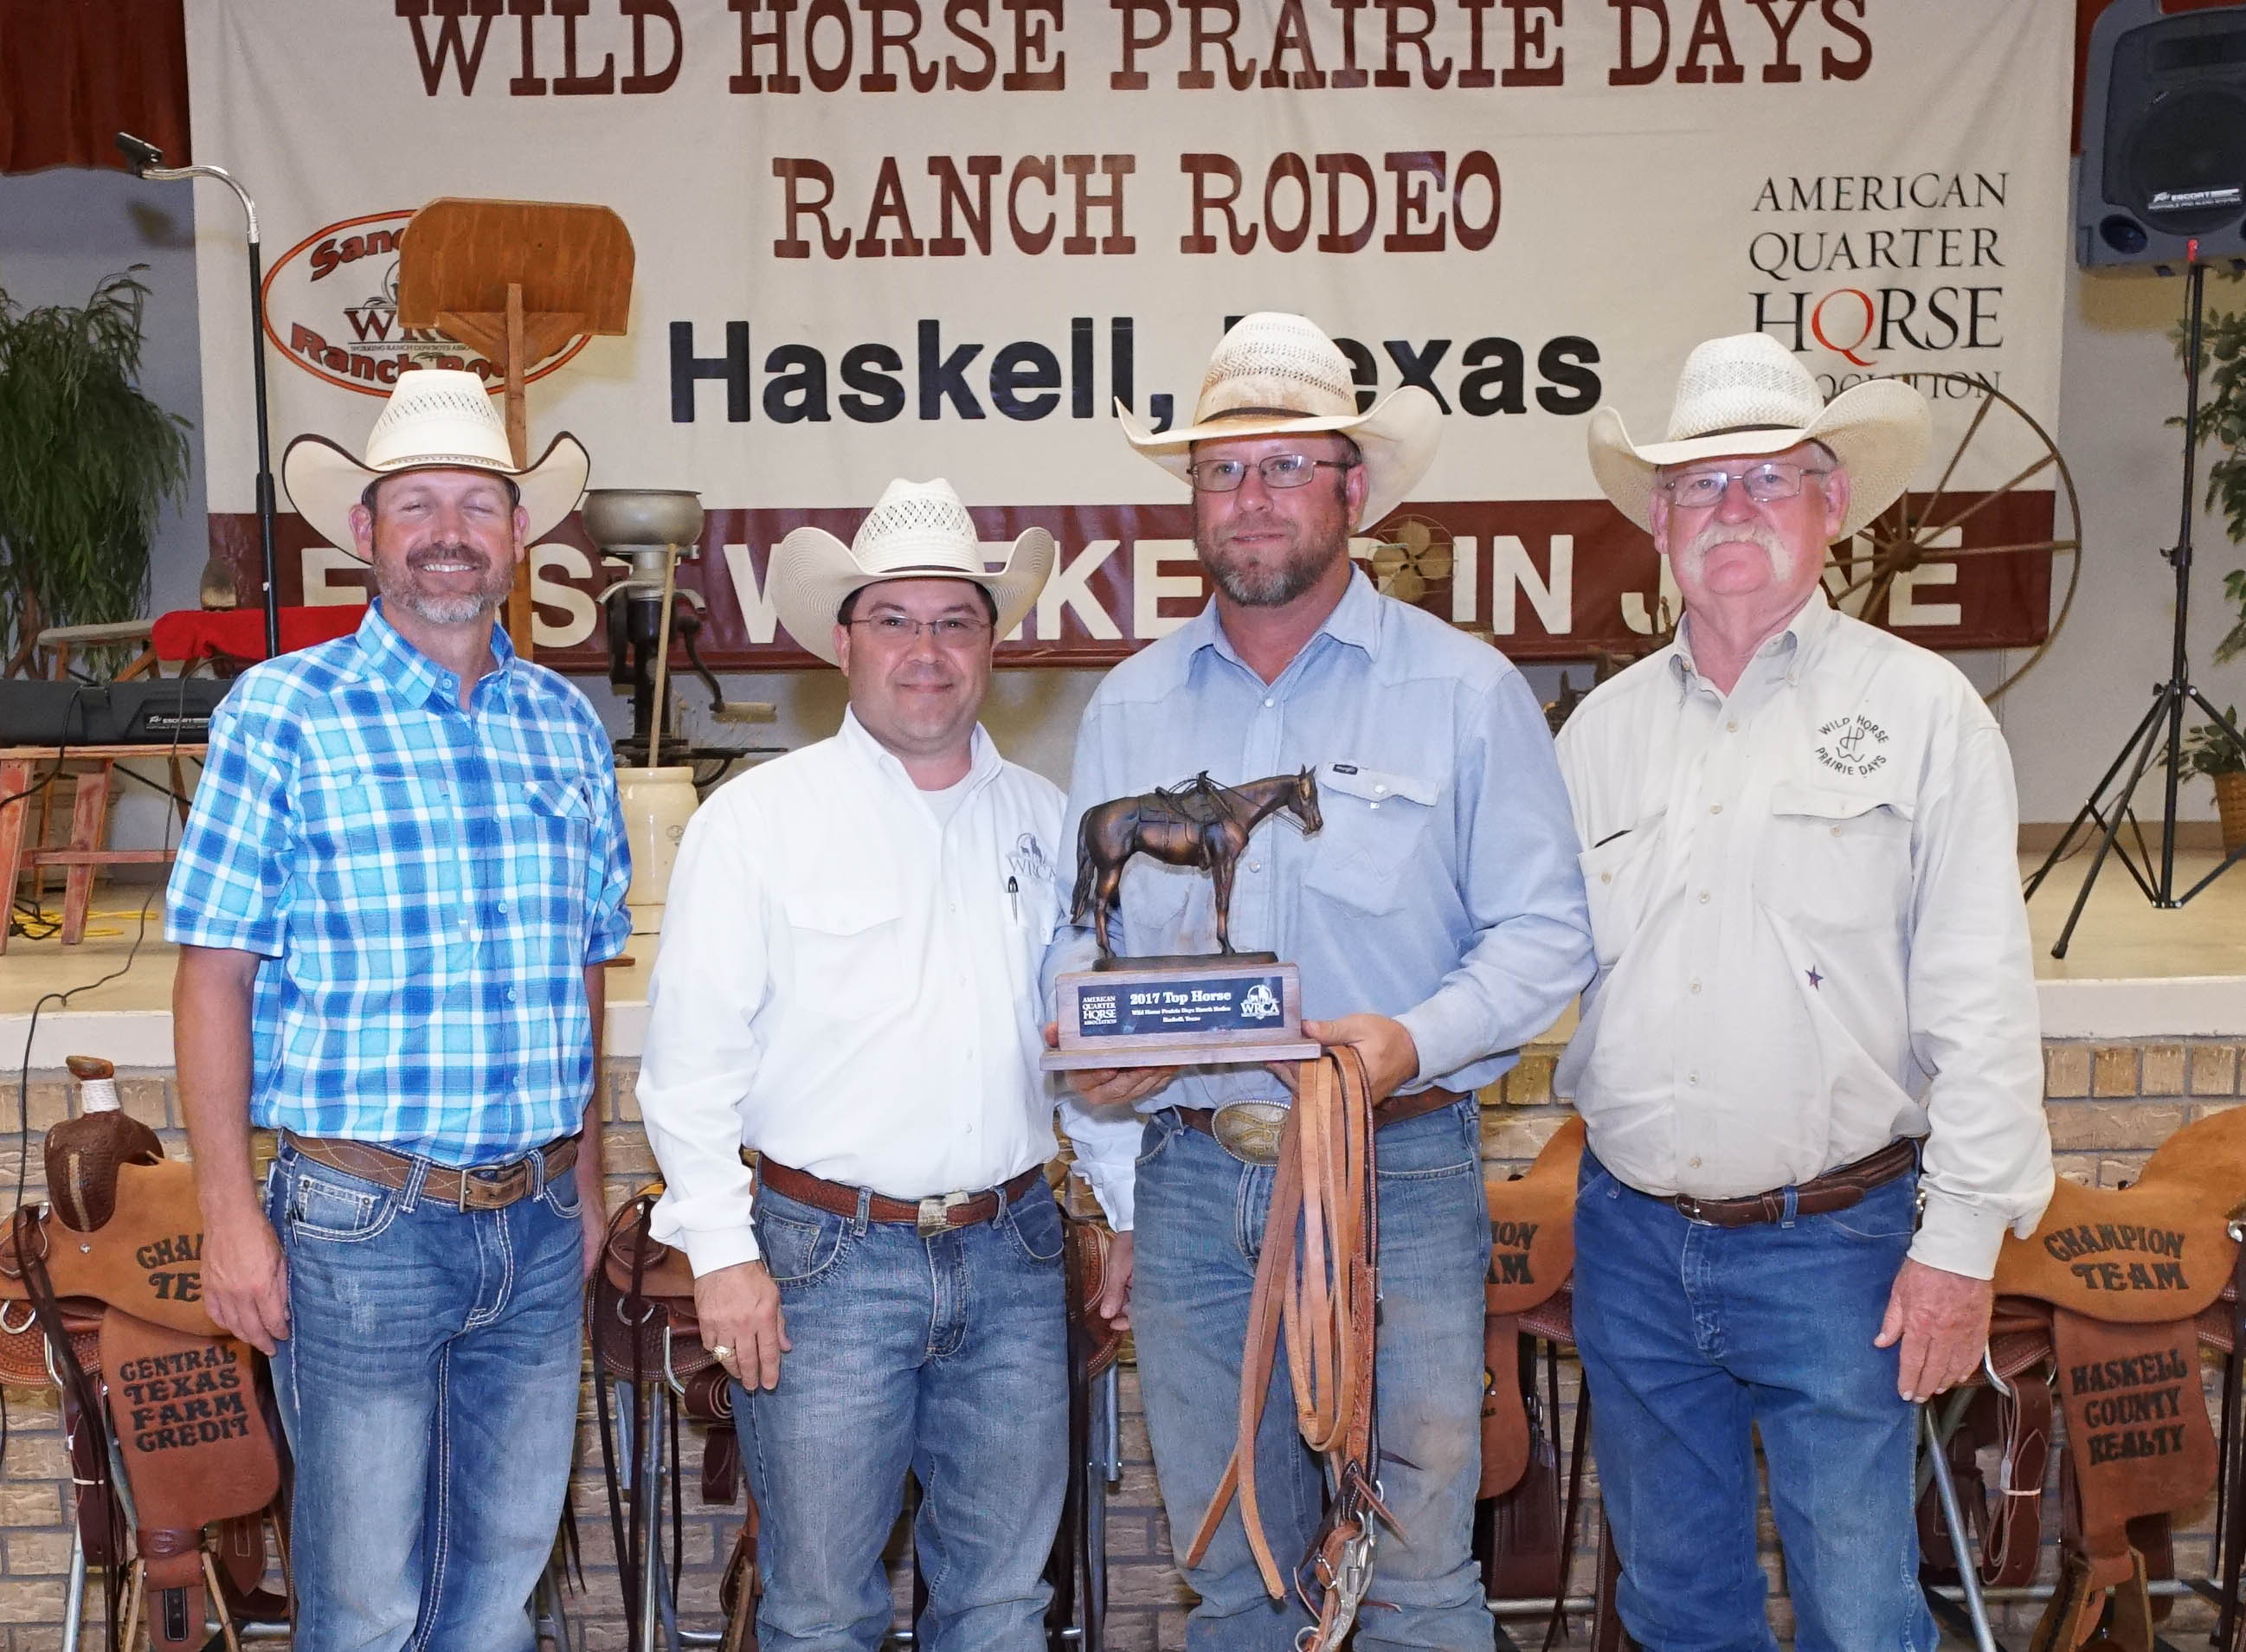 2017 Wild Horse Prairie Days Official Results Top Horse Winner